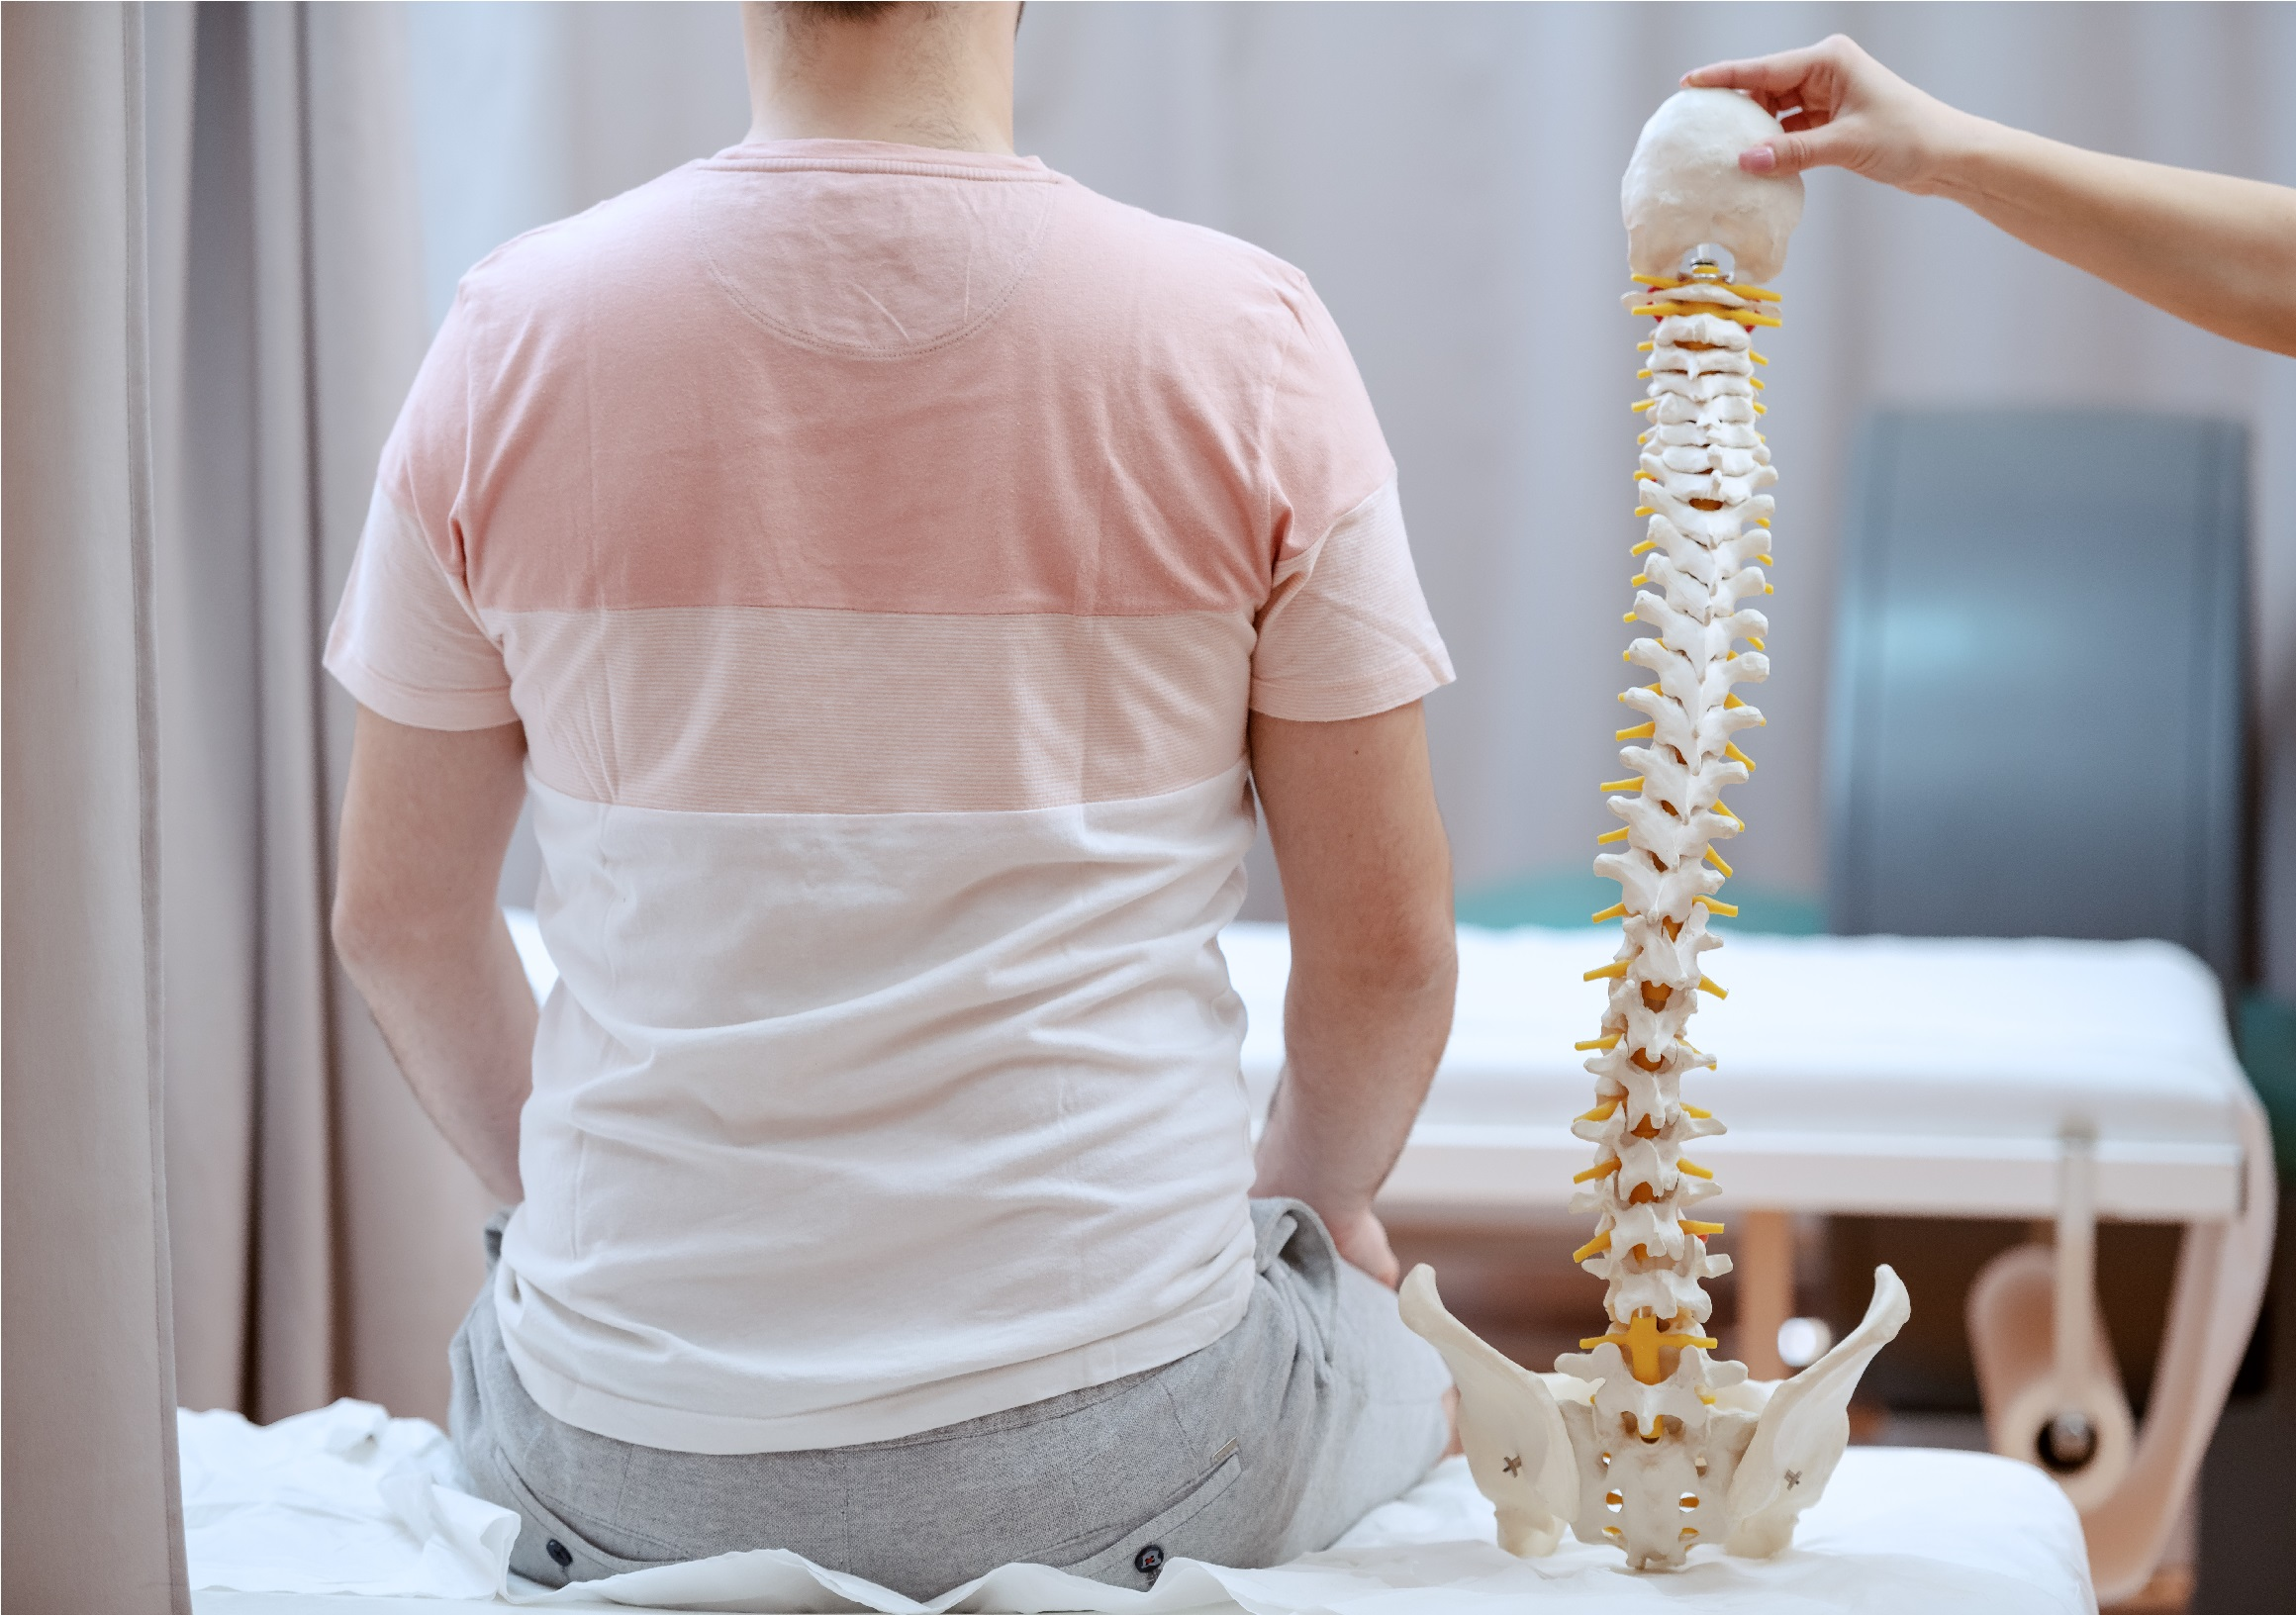 What to Do After A Chiropractic Adjustment